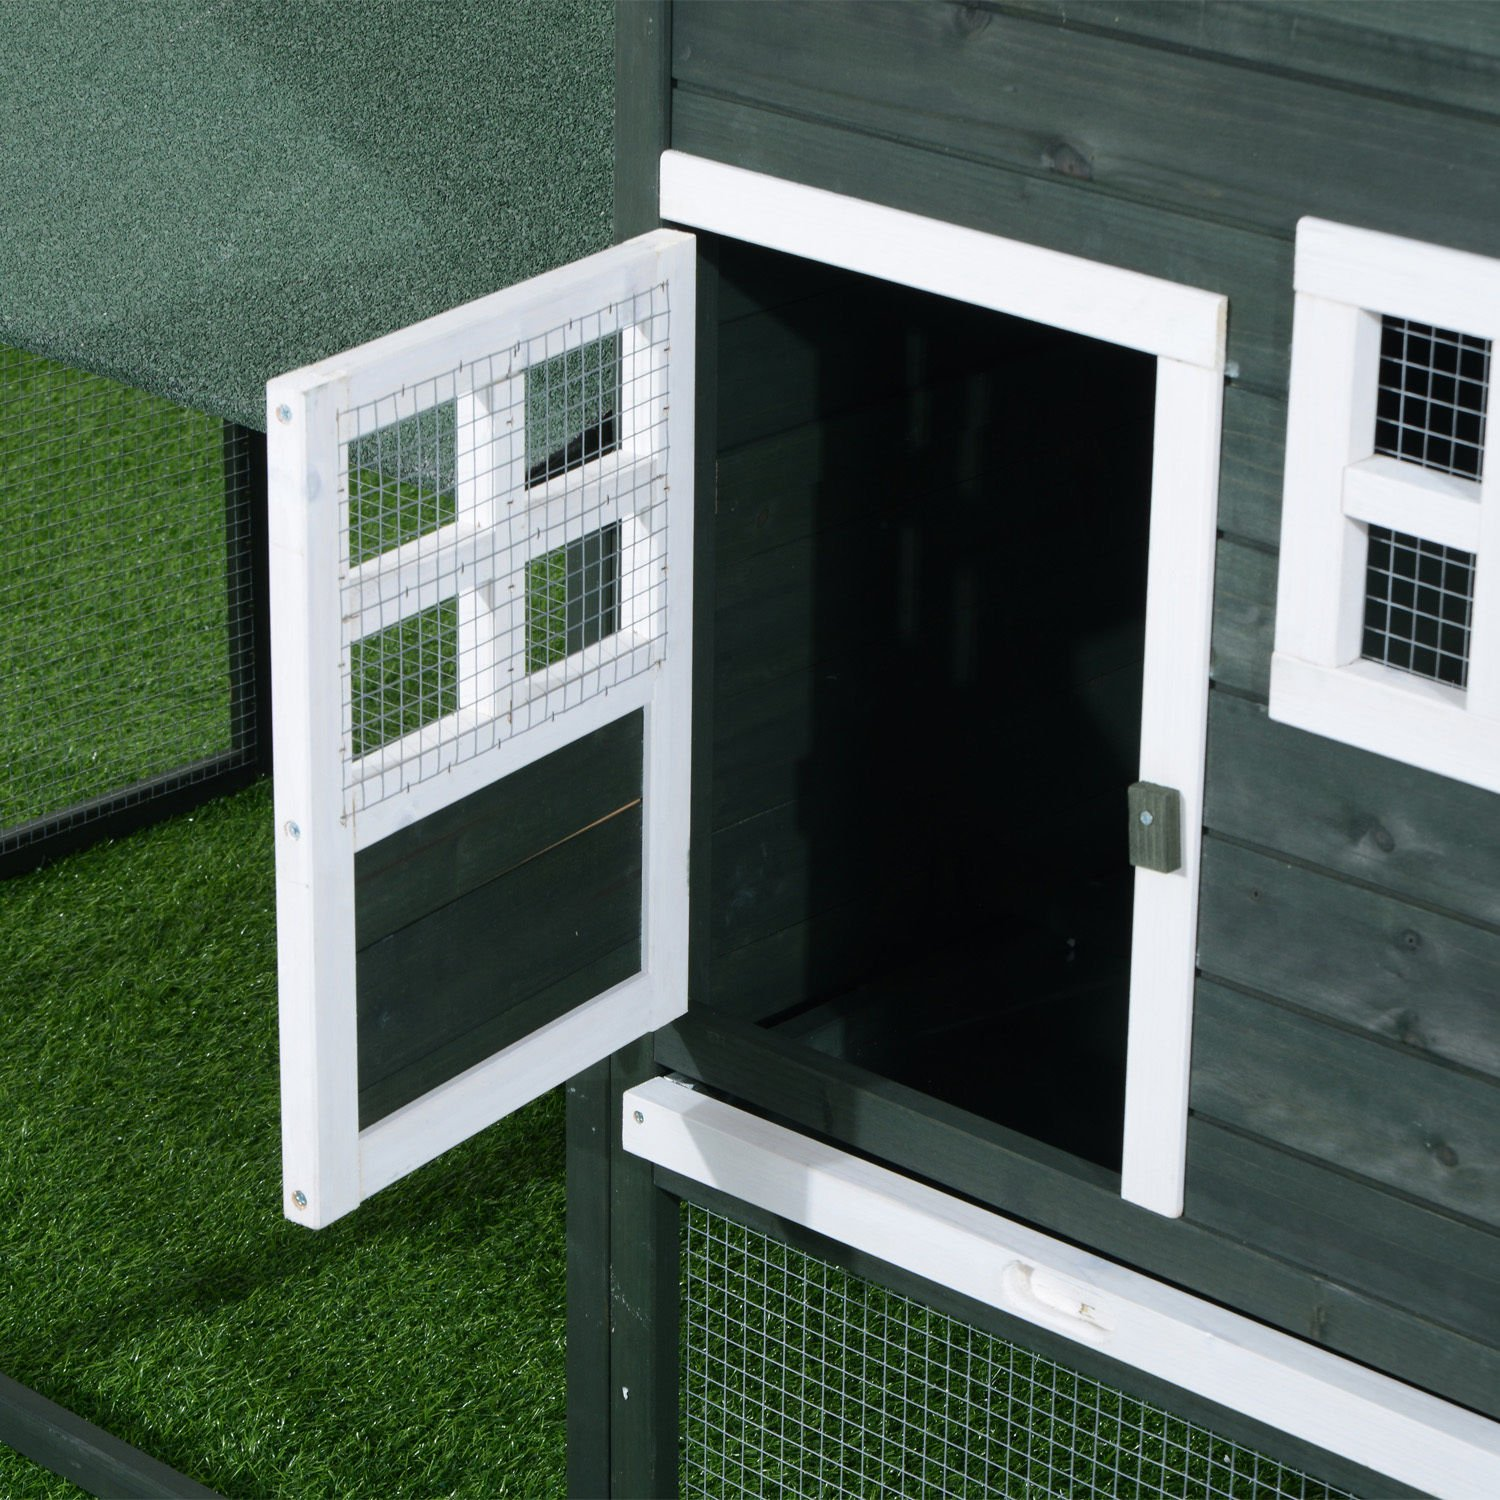 Pawhut Wooden Backyard Poultry Hen House Chicken Coop - Green by PawHut (Image #7)